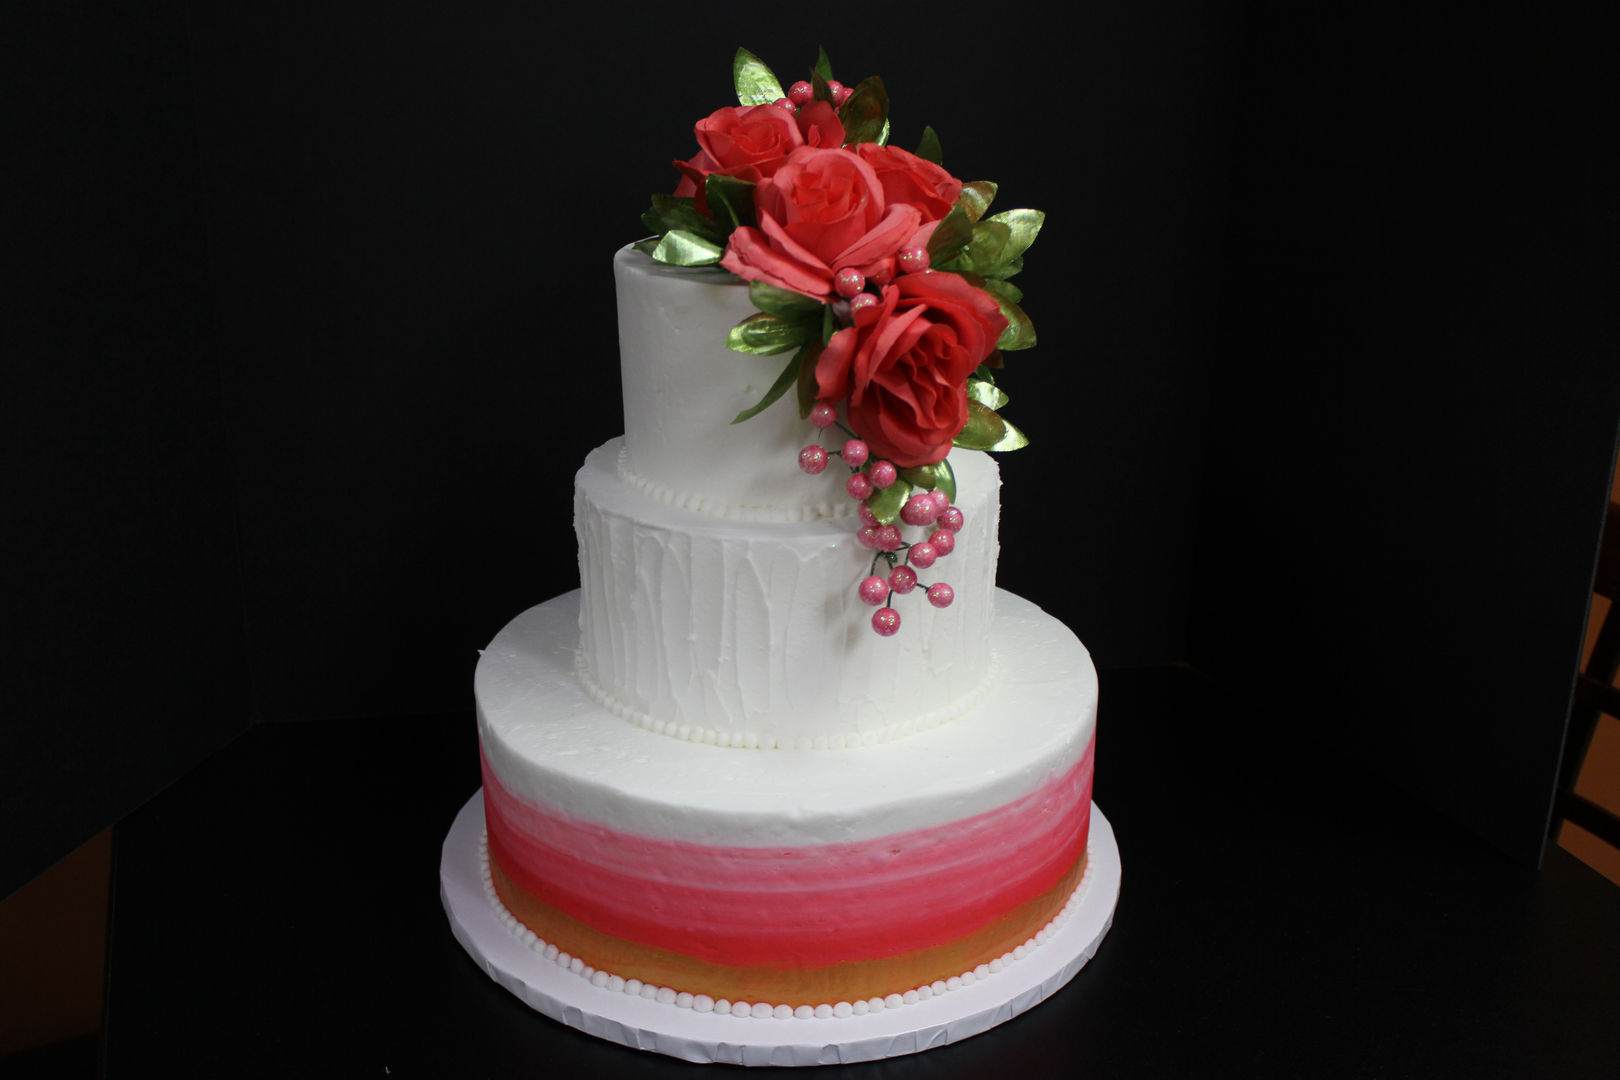 Wedding Cakes Bakery Bread Cupcakes Donuts St Cloud MN Cold